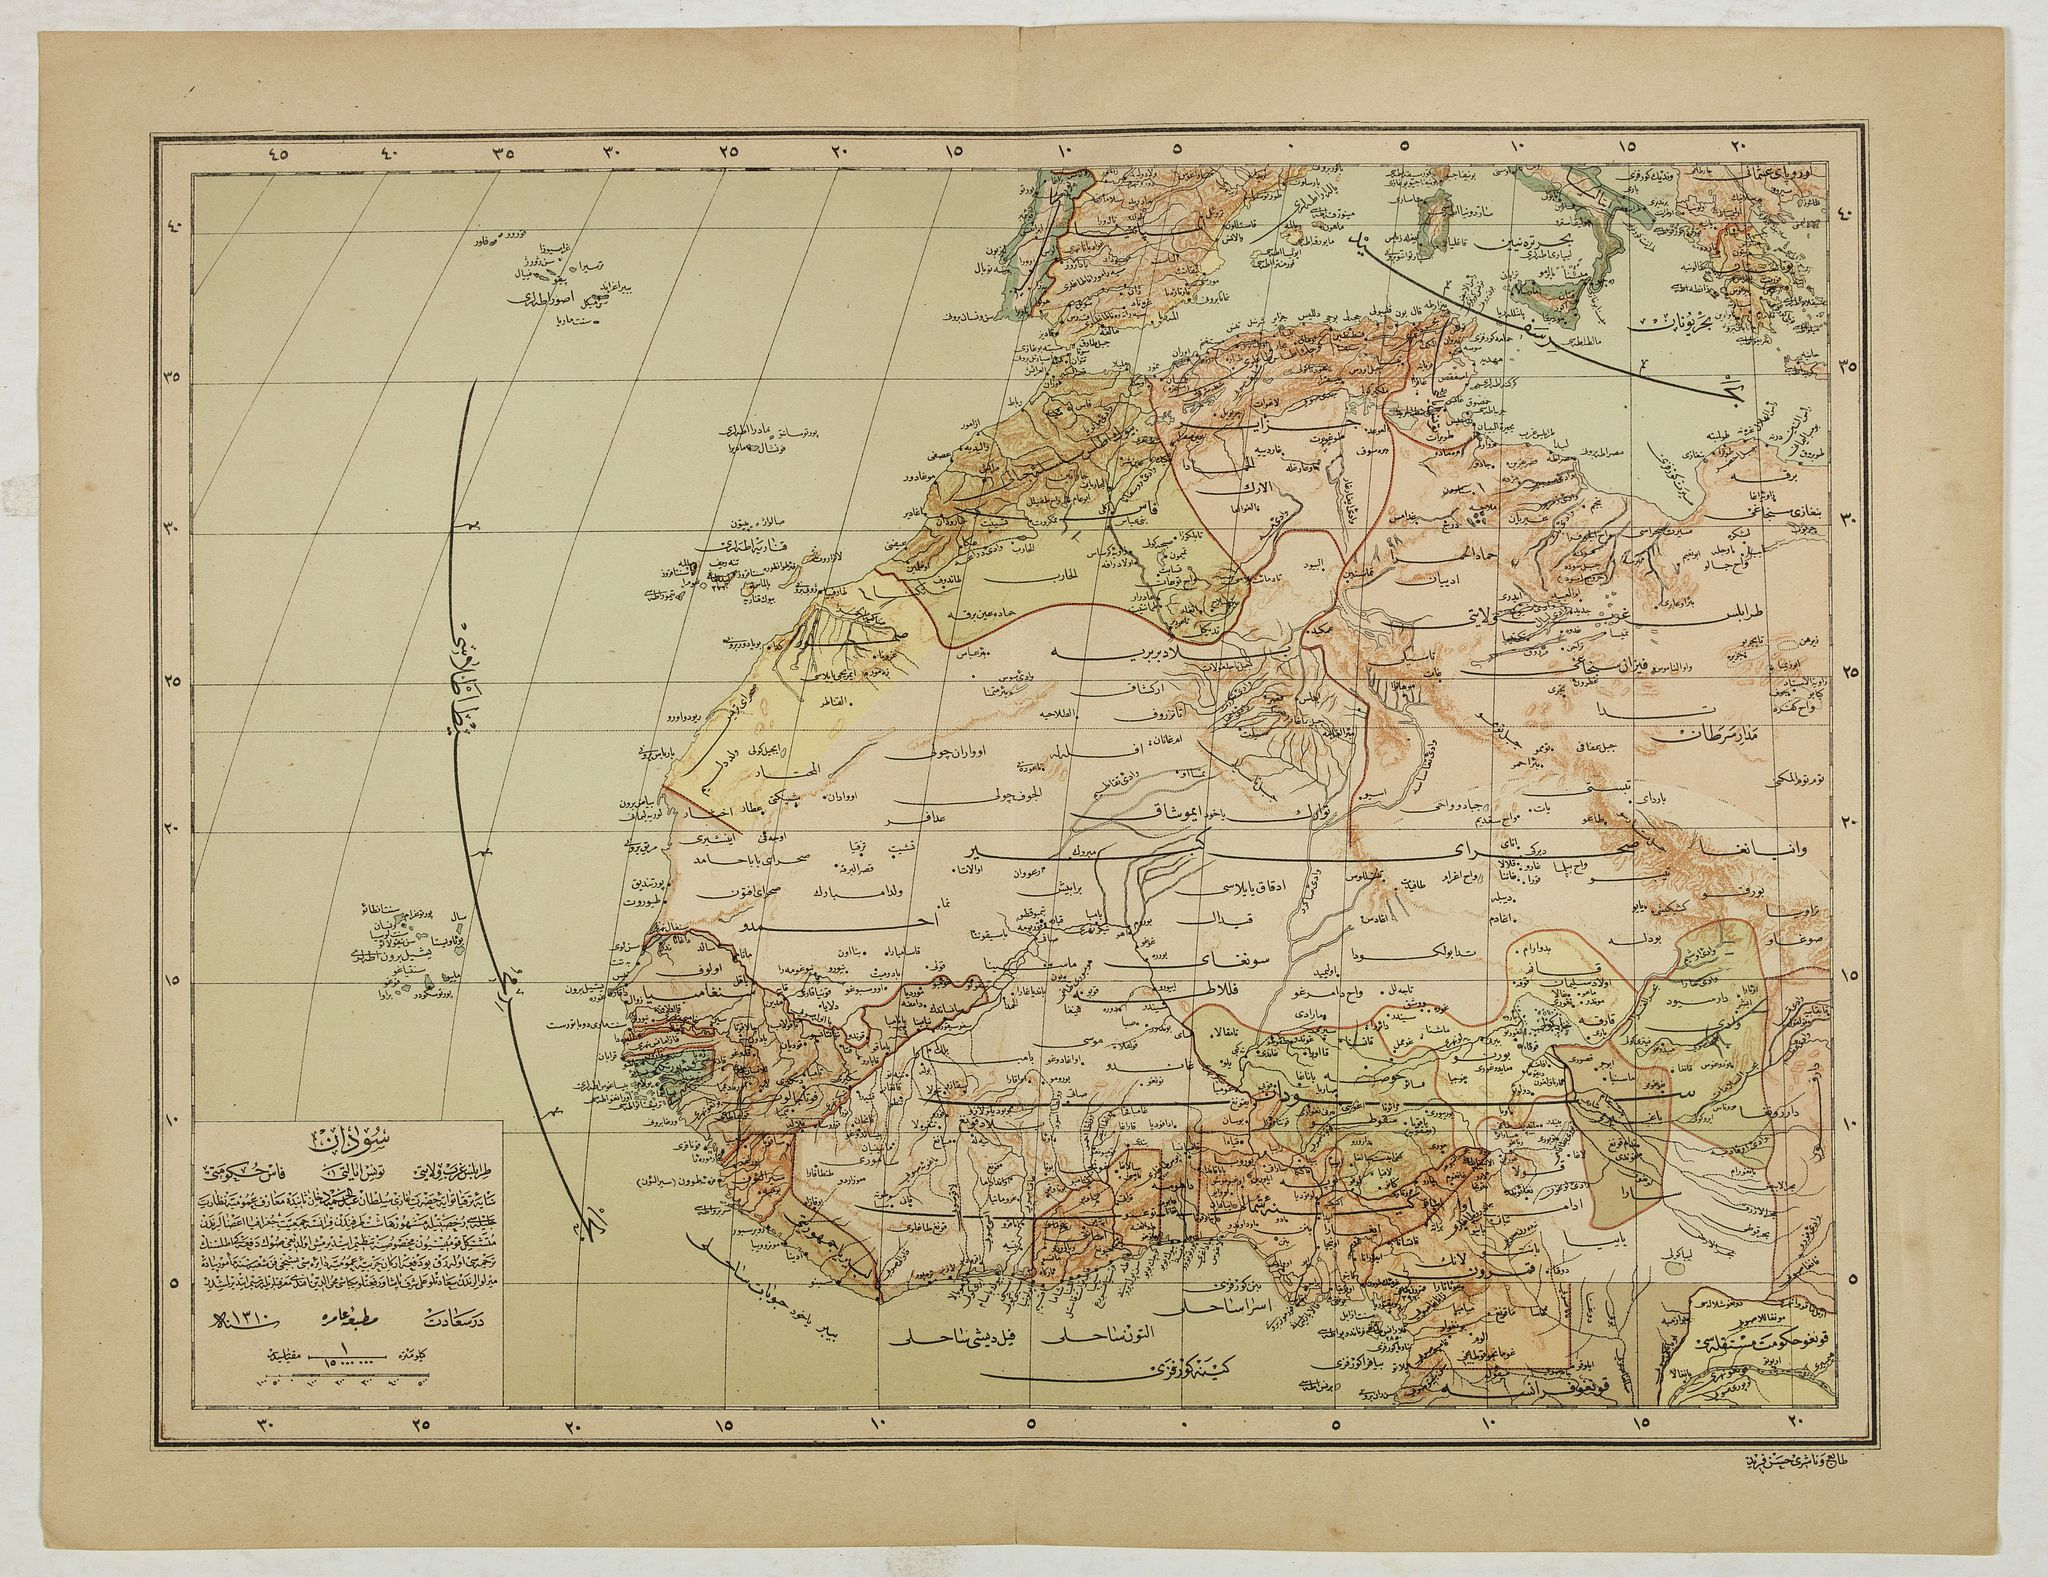 Ali SEREF PASA -  [Title in Ottoman Turkish: WEST AFRICA AND THE MAGHREB].